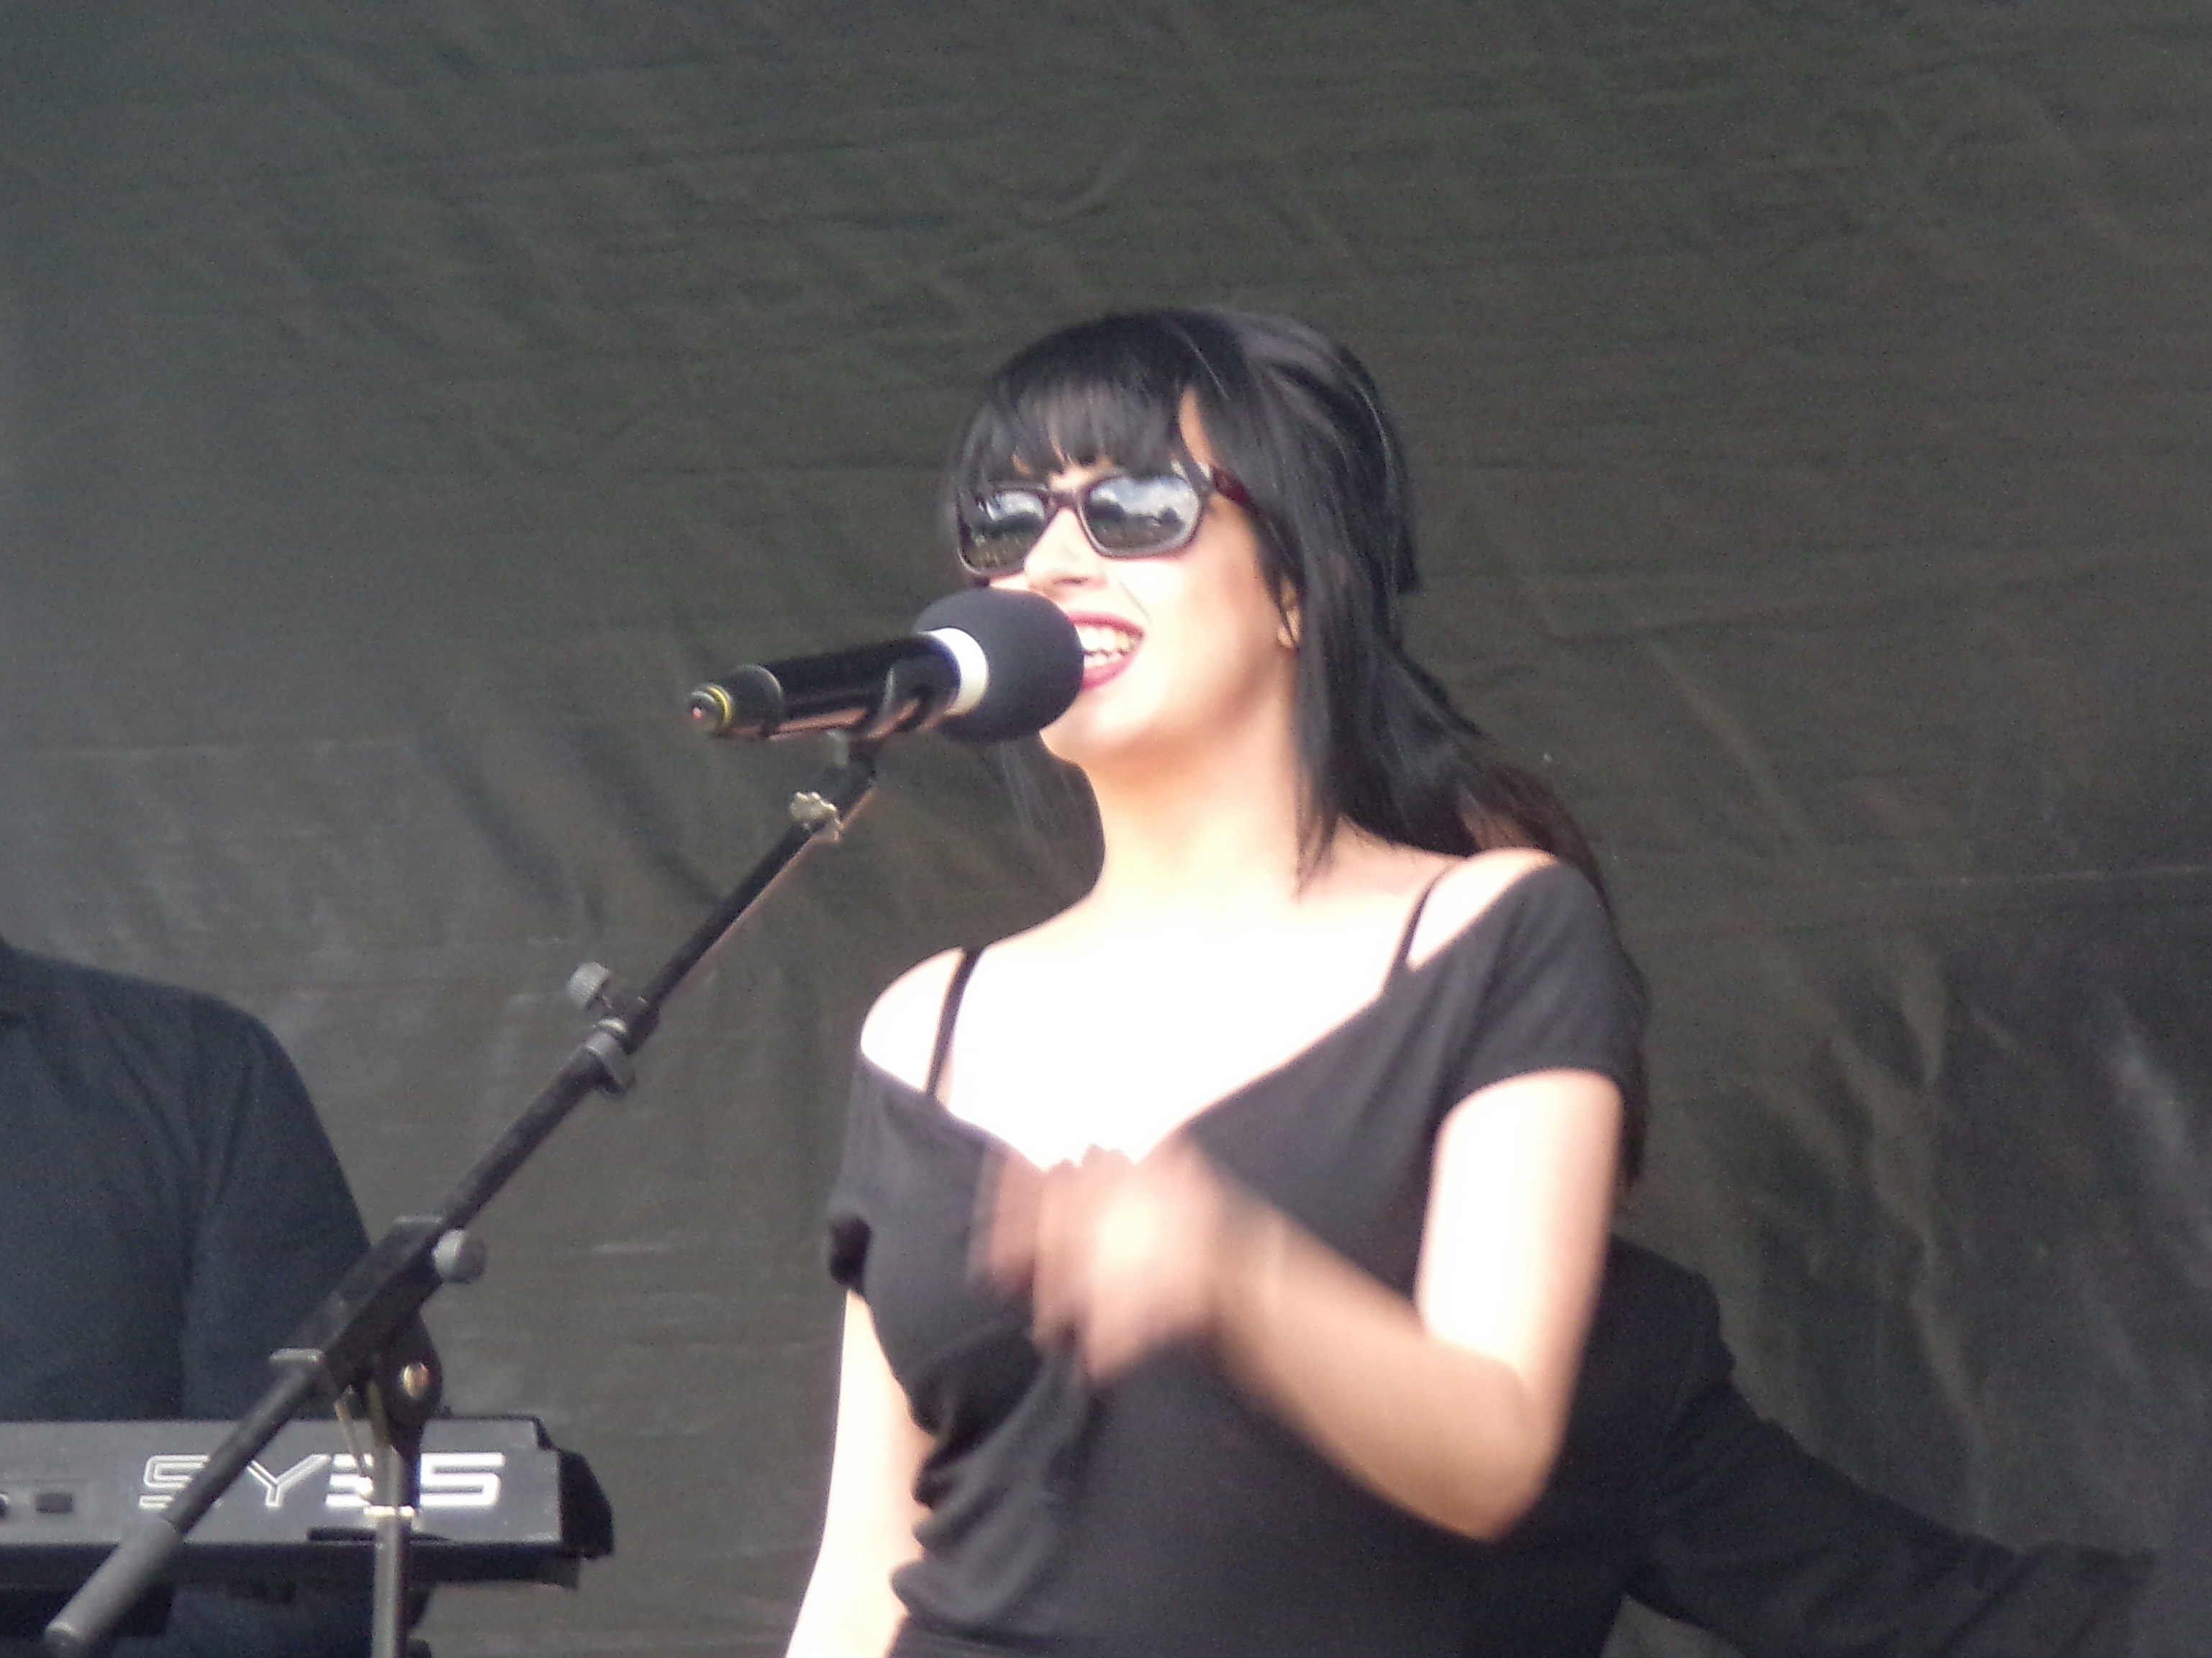 singer with sunglasses 4